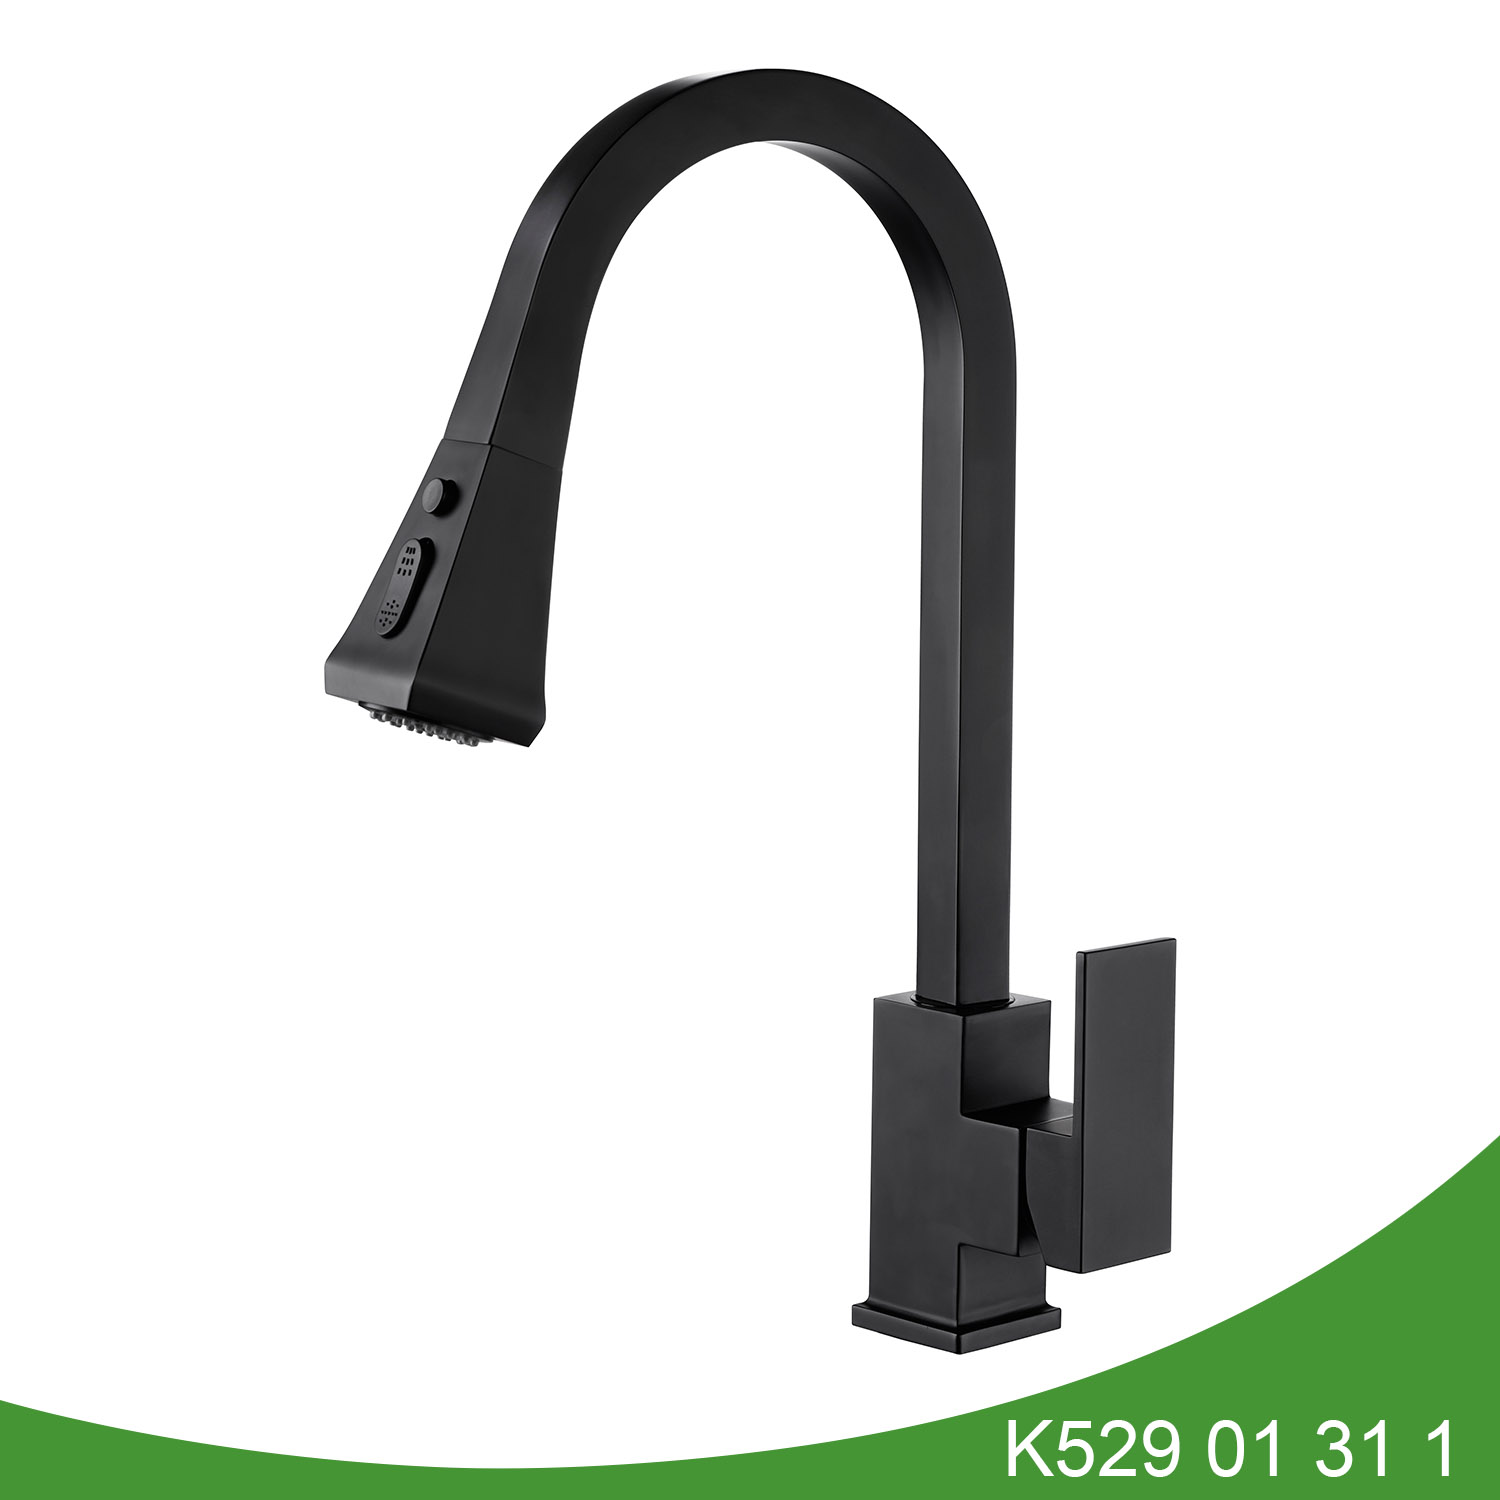 Matt black pull out kitchen faucet K529 01 31 1